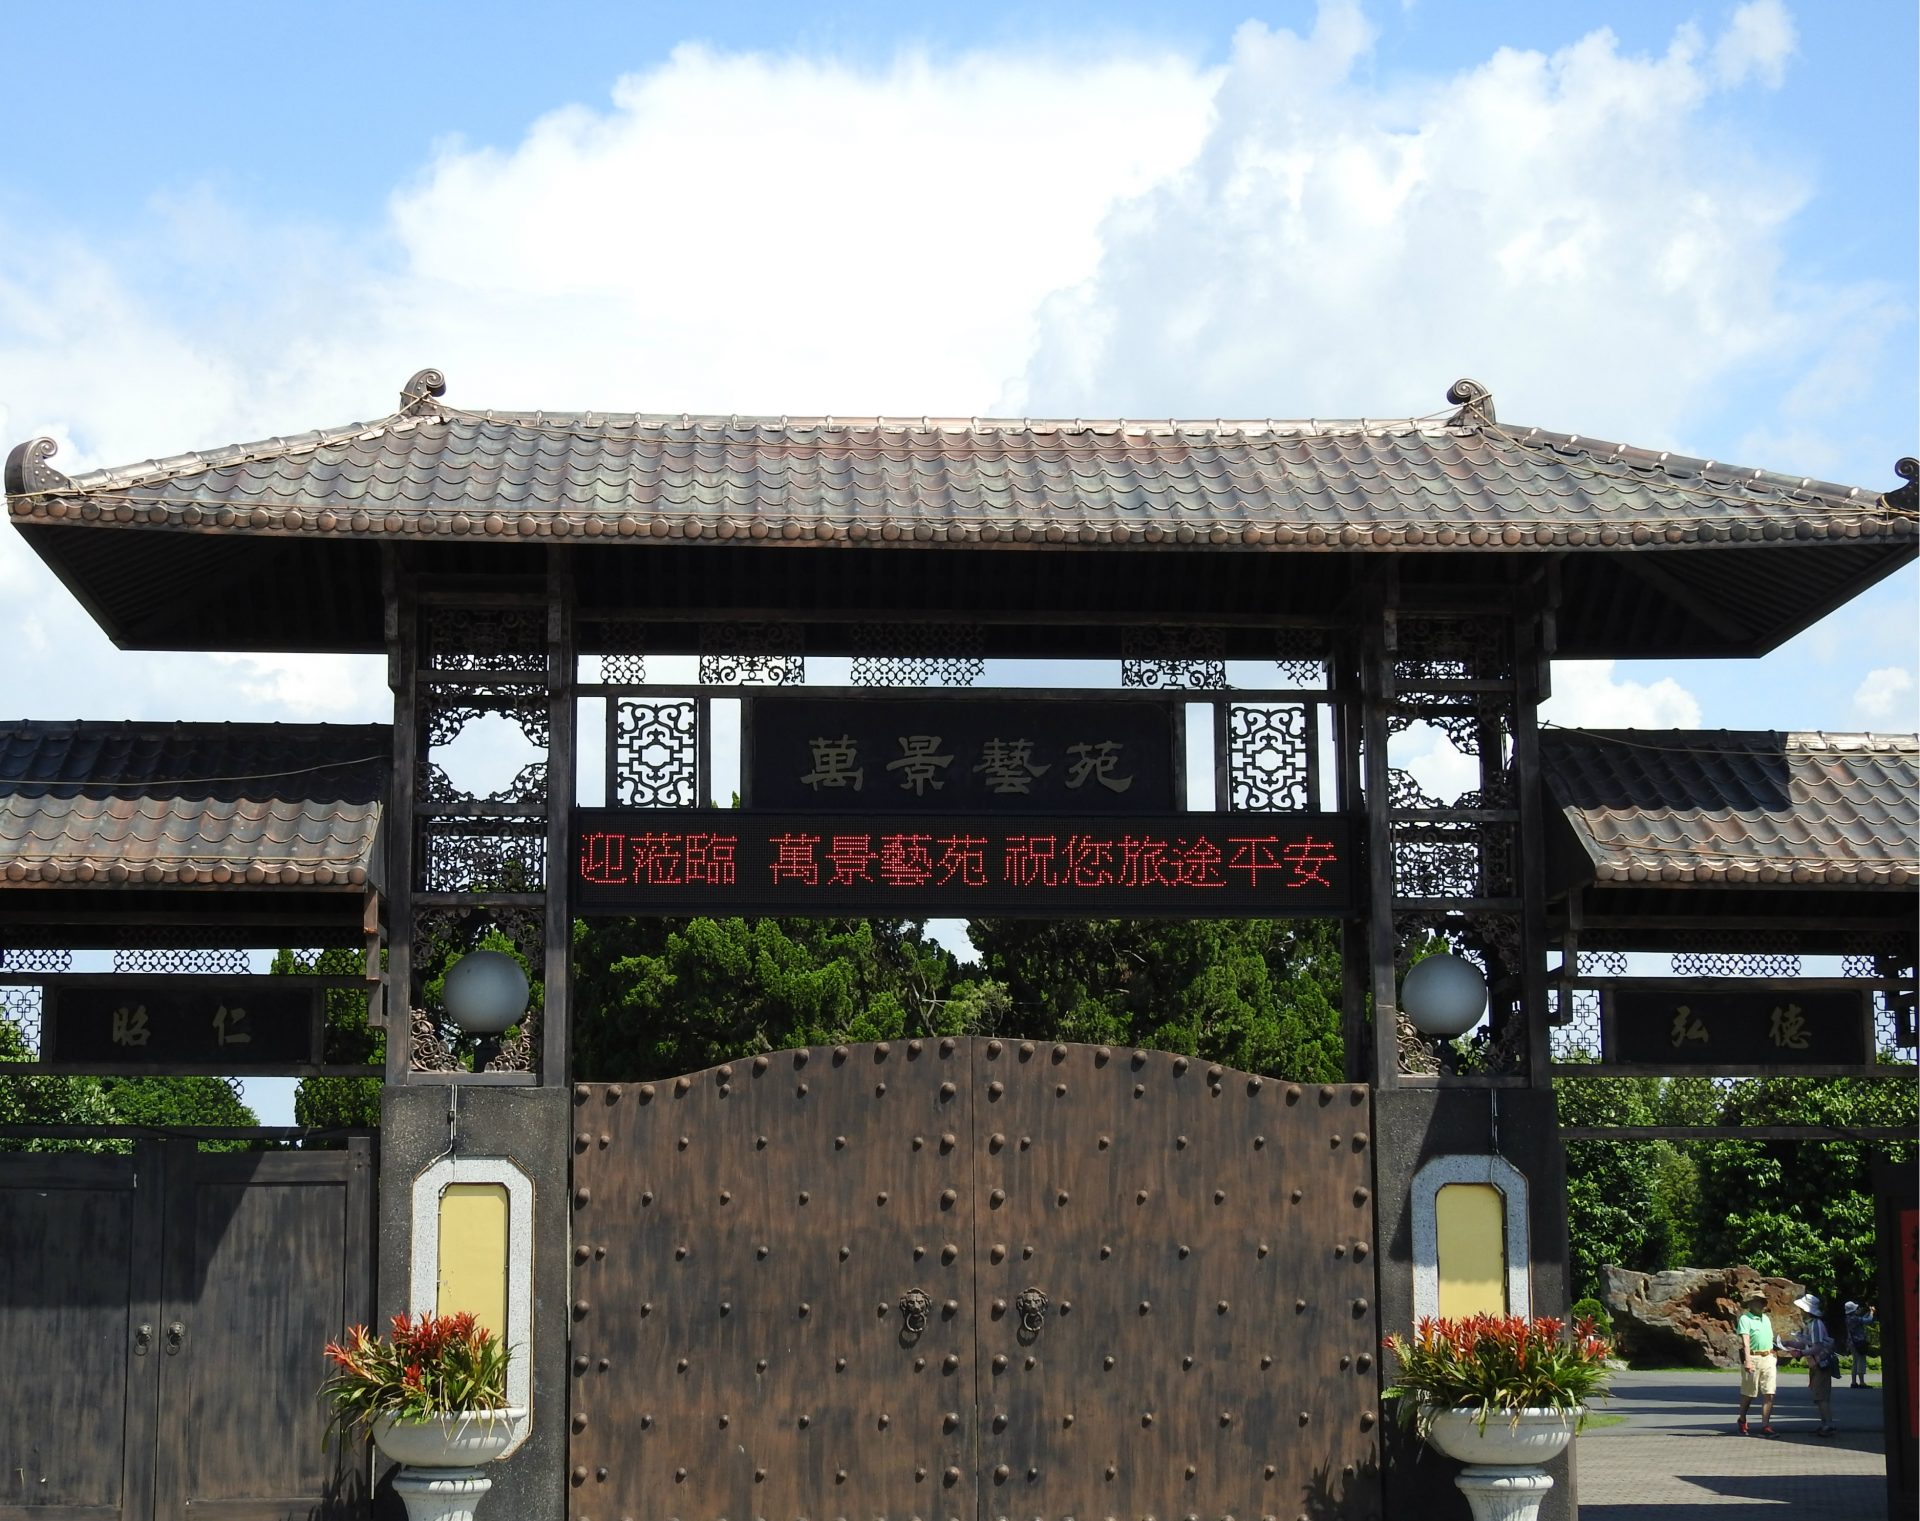 The entrance of Wann Ying Art Garden (萬景藝苑) at Changhua County in central Taiwan (Image: Billy Shyu/ Vision Times)